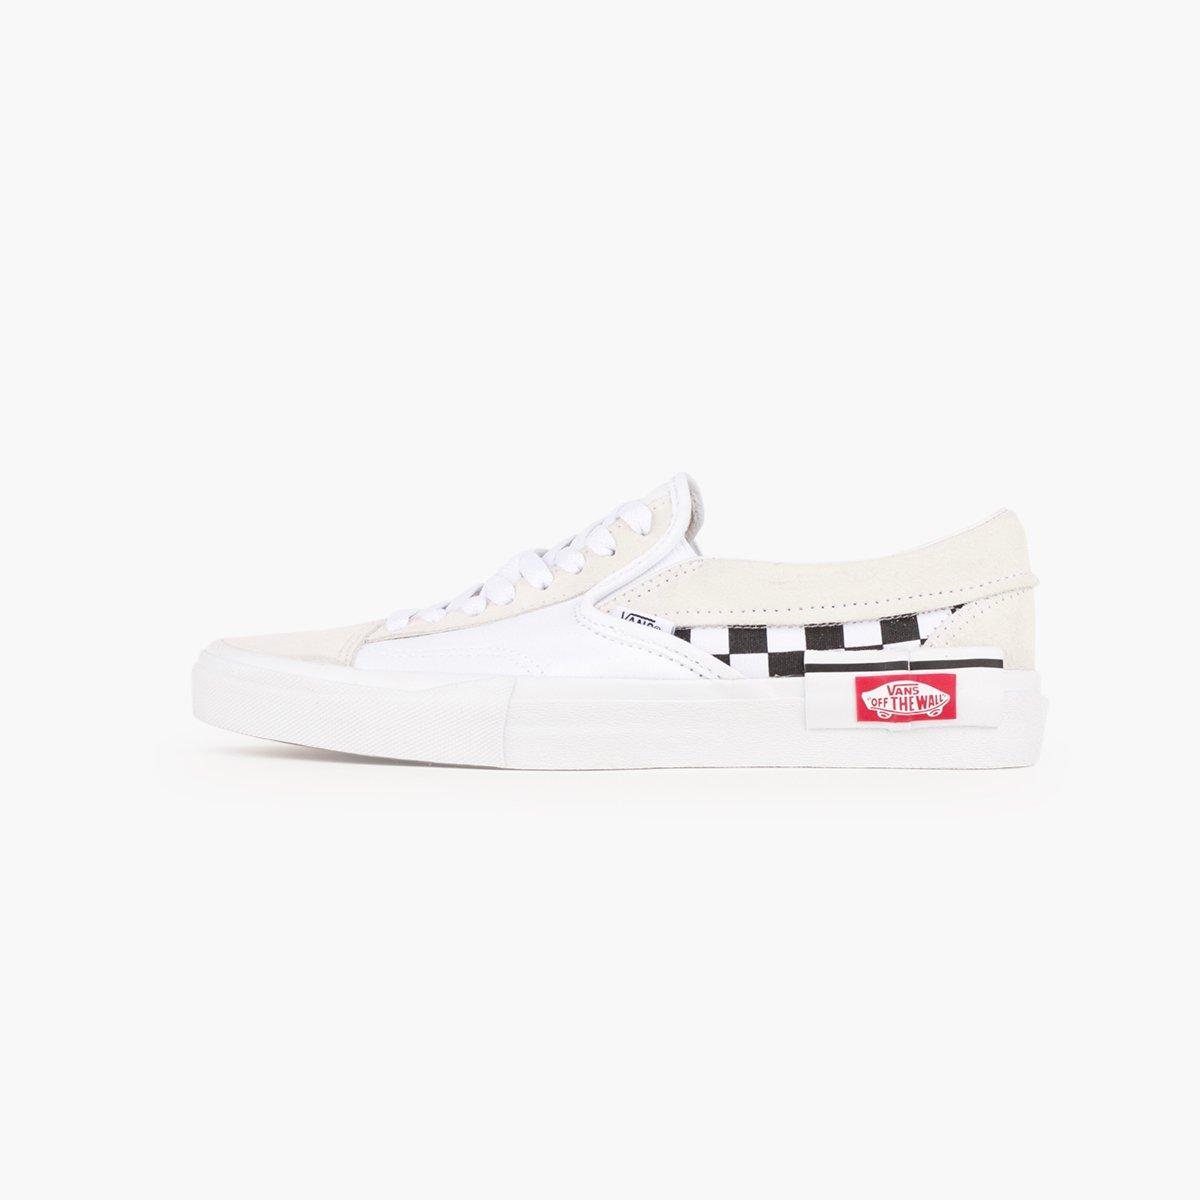 6e6d644cbe Lyst - Vans Ua Slip-on Cap (checkerboard) in White